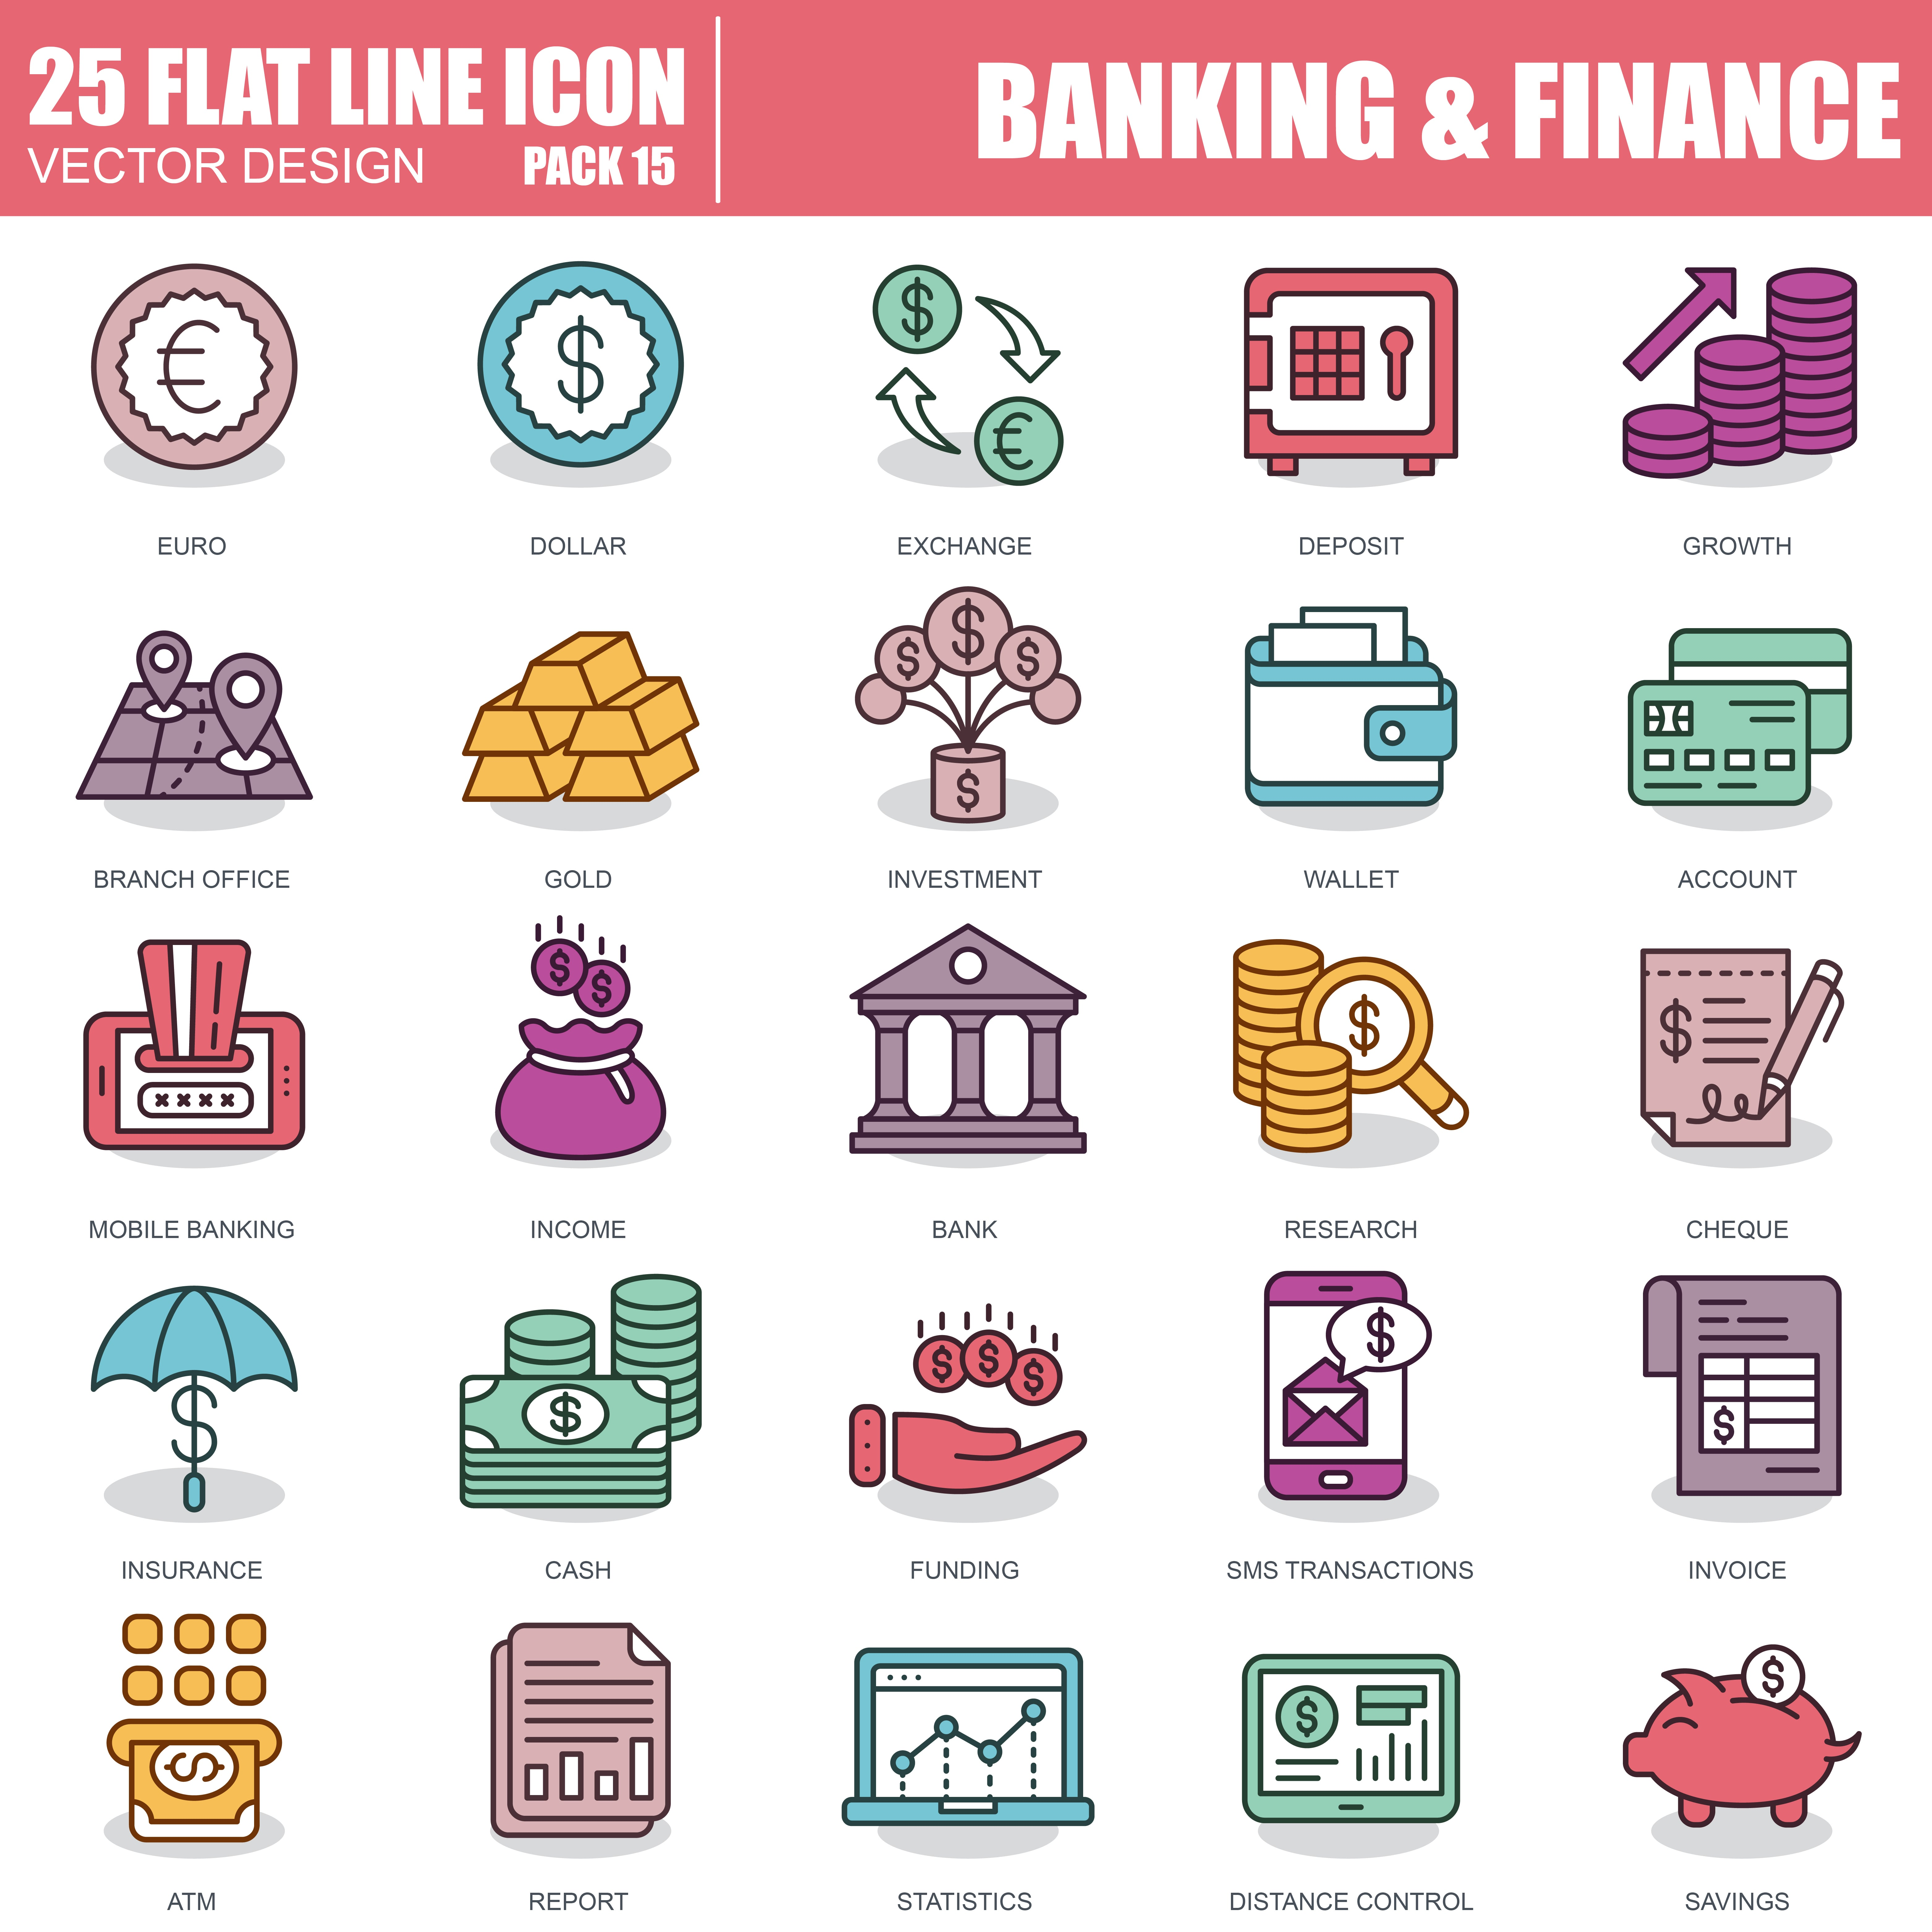 1000 Business Line Icons - just $22 - 15